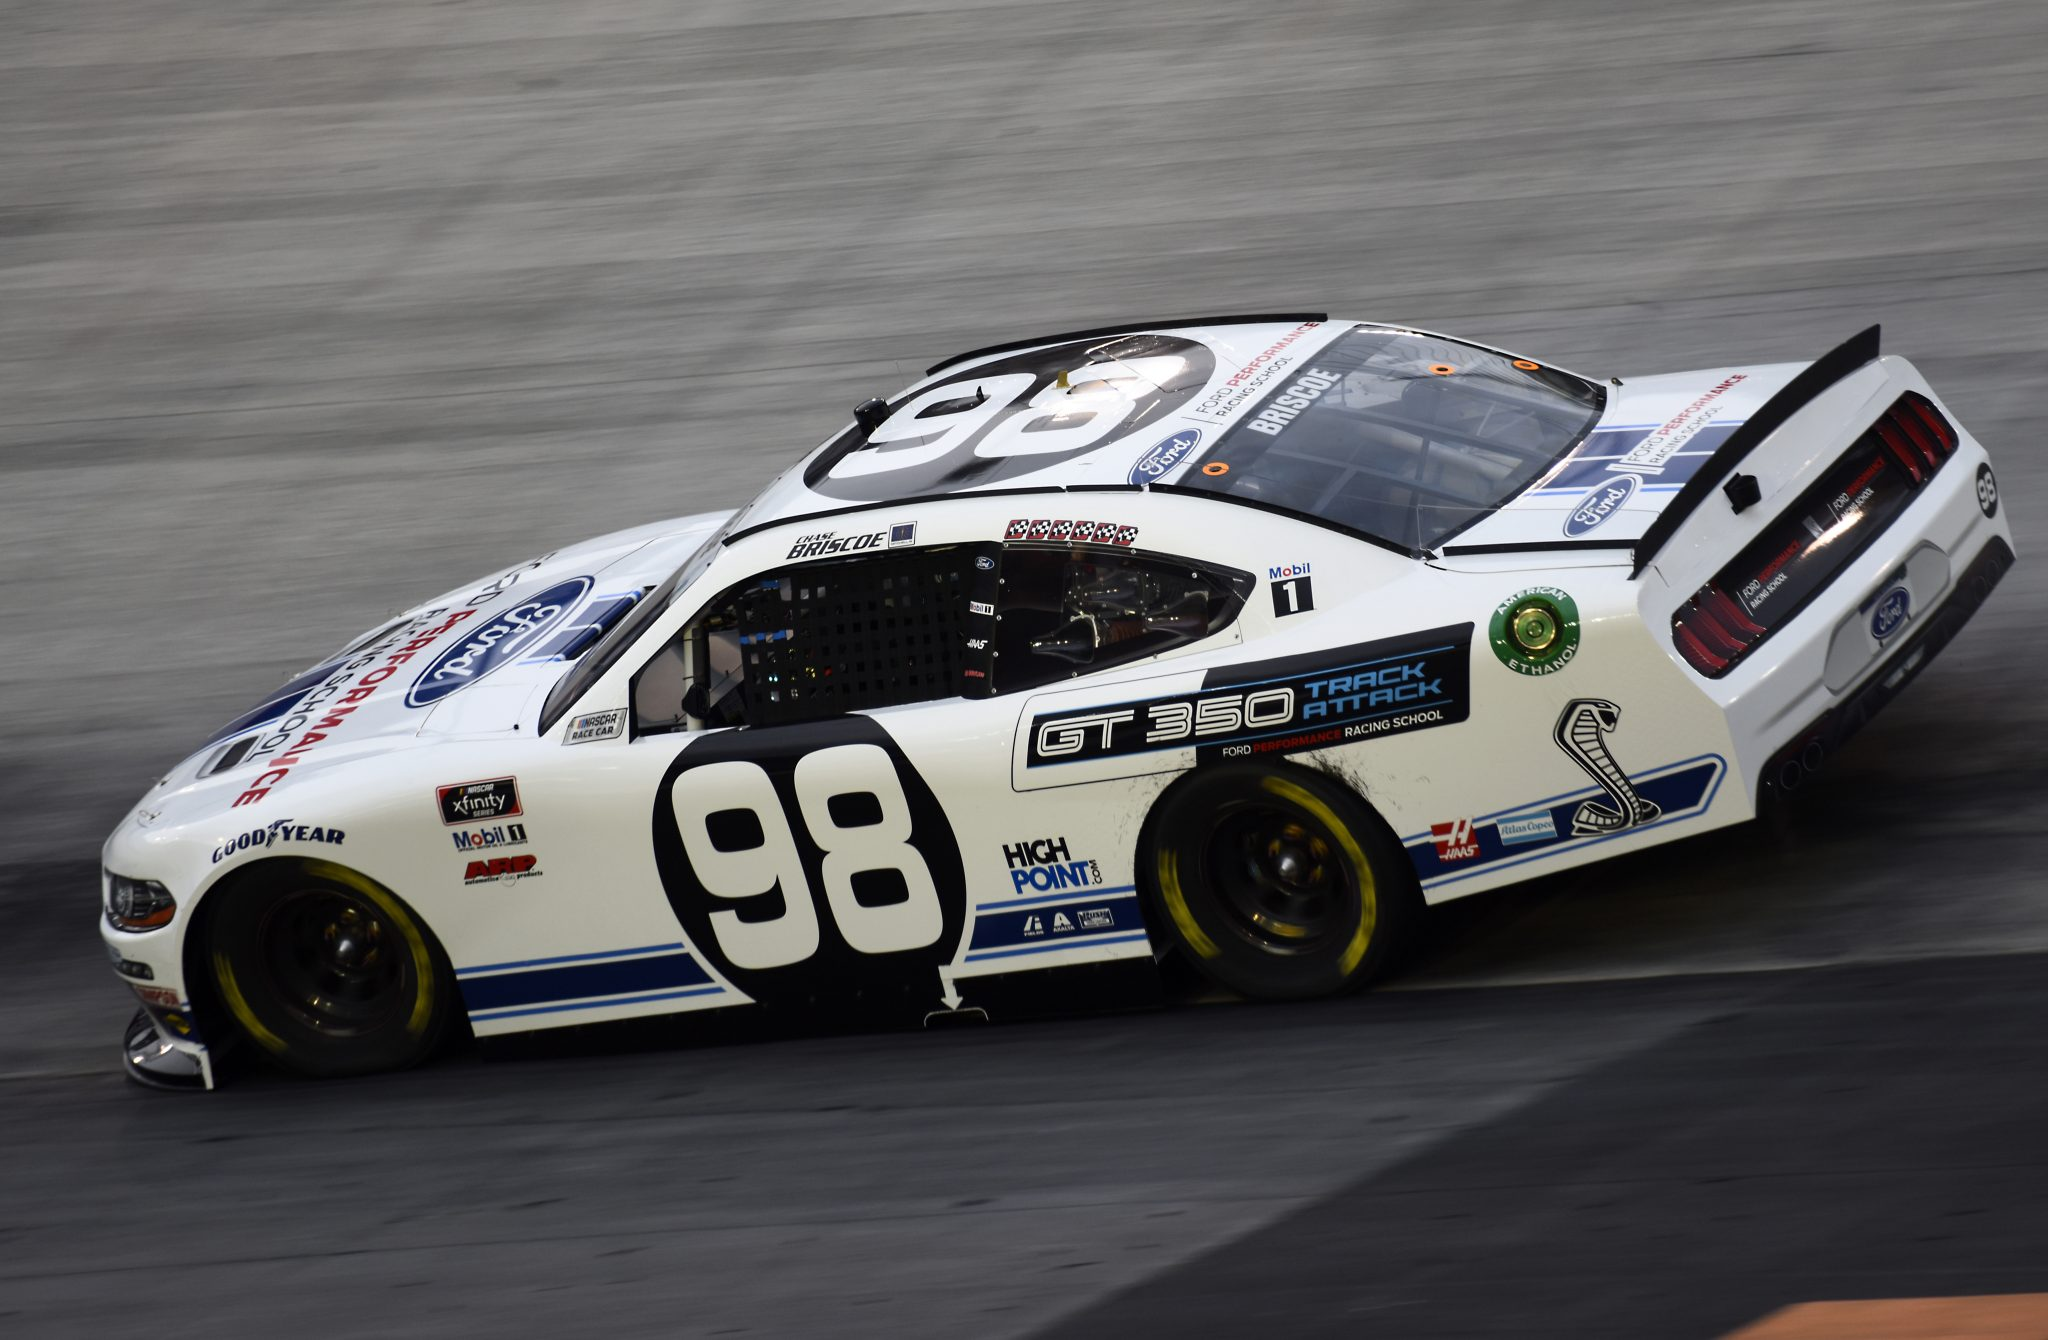 BRISTOL, TENNESSEE - SEPTEMBER 18: Chase Briscoe, driver of the #98 Ford Performance Racing School Ford, drives during the NASCAR Xfinity Series Food City 300 at Bristol Motor Speedway on September 18, 2020 in Bristol, Tennessee. (Photo by Jared C. Tilton/Getty Images) | Getty Images